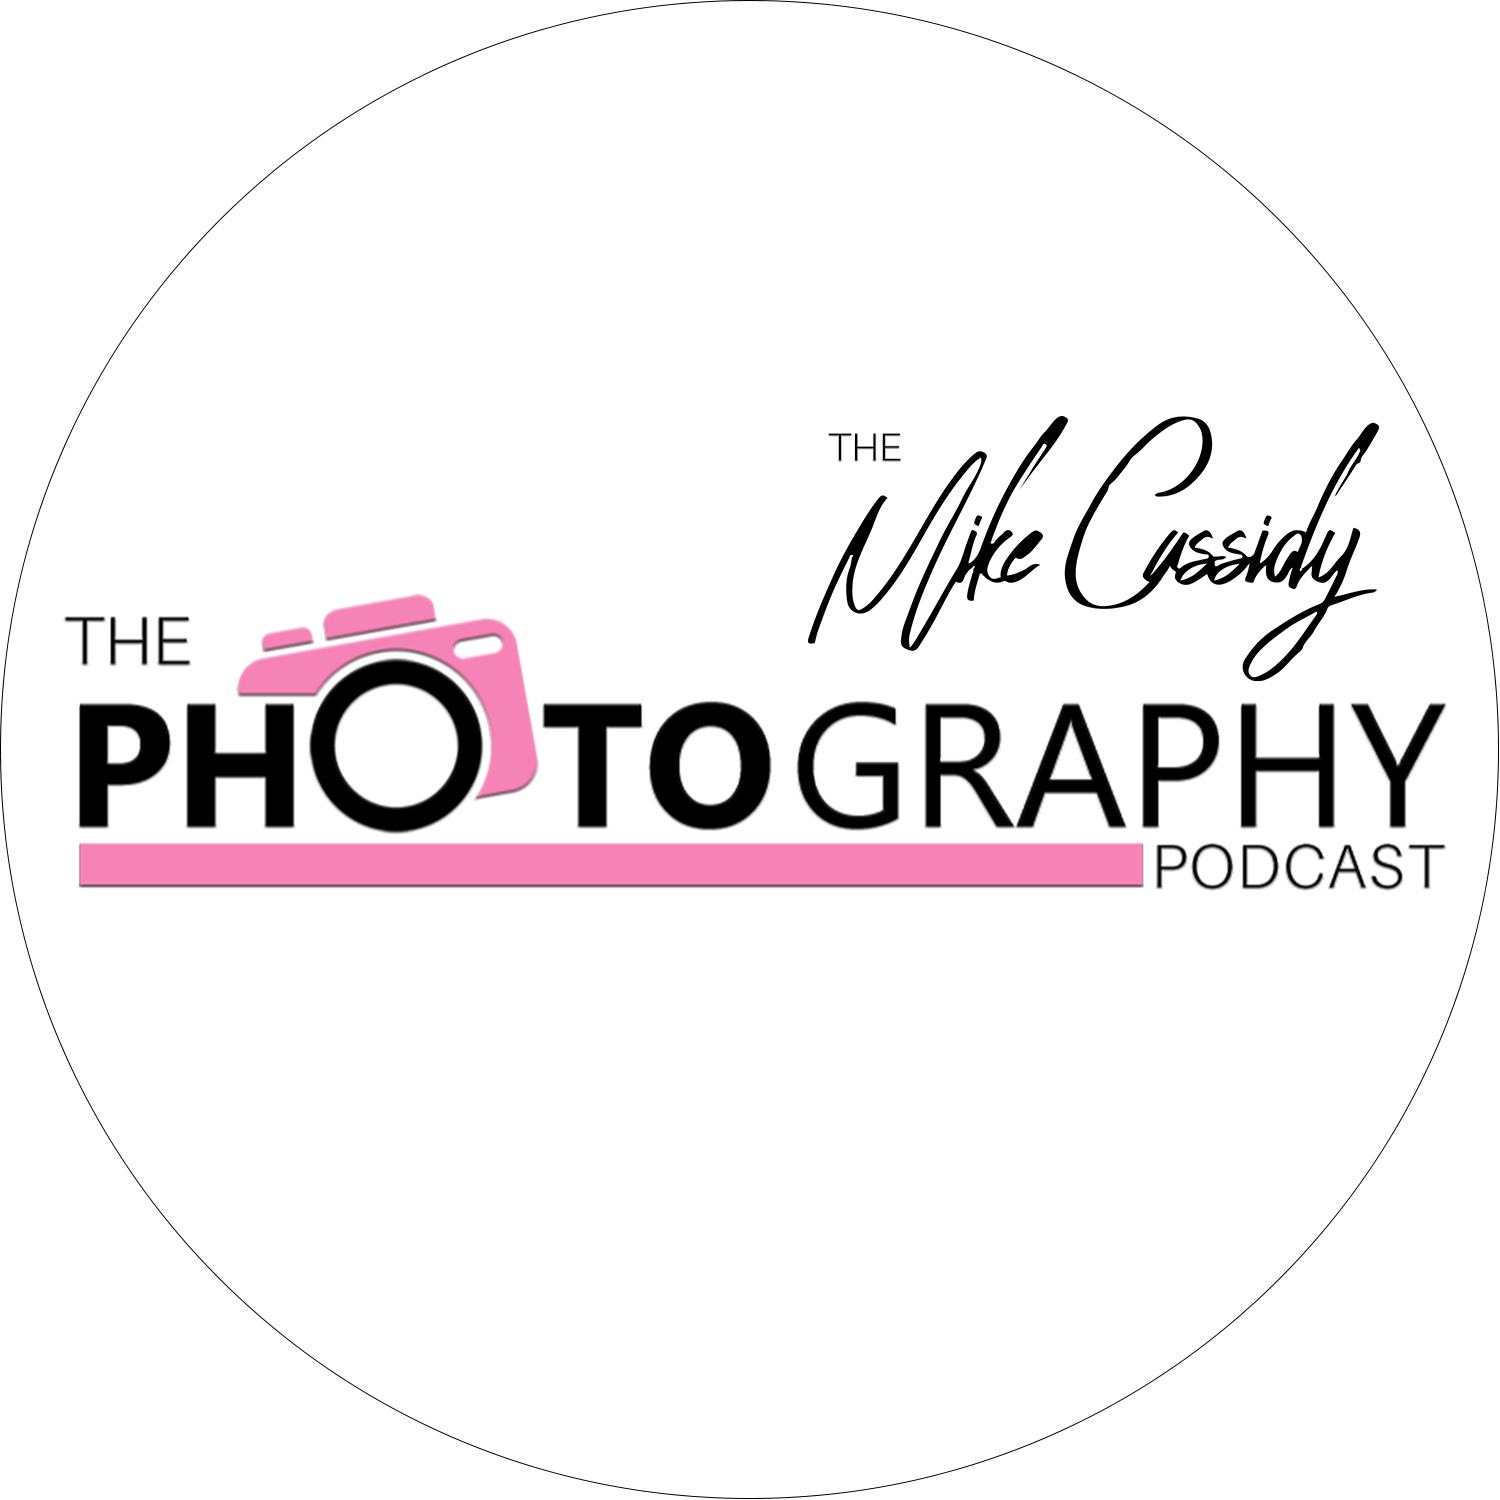 The Photography Podcast Booking